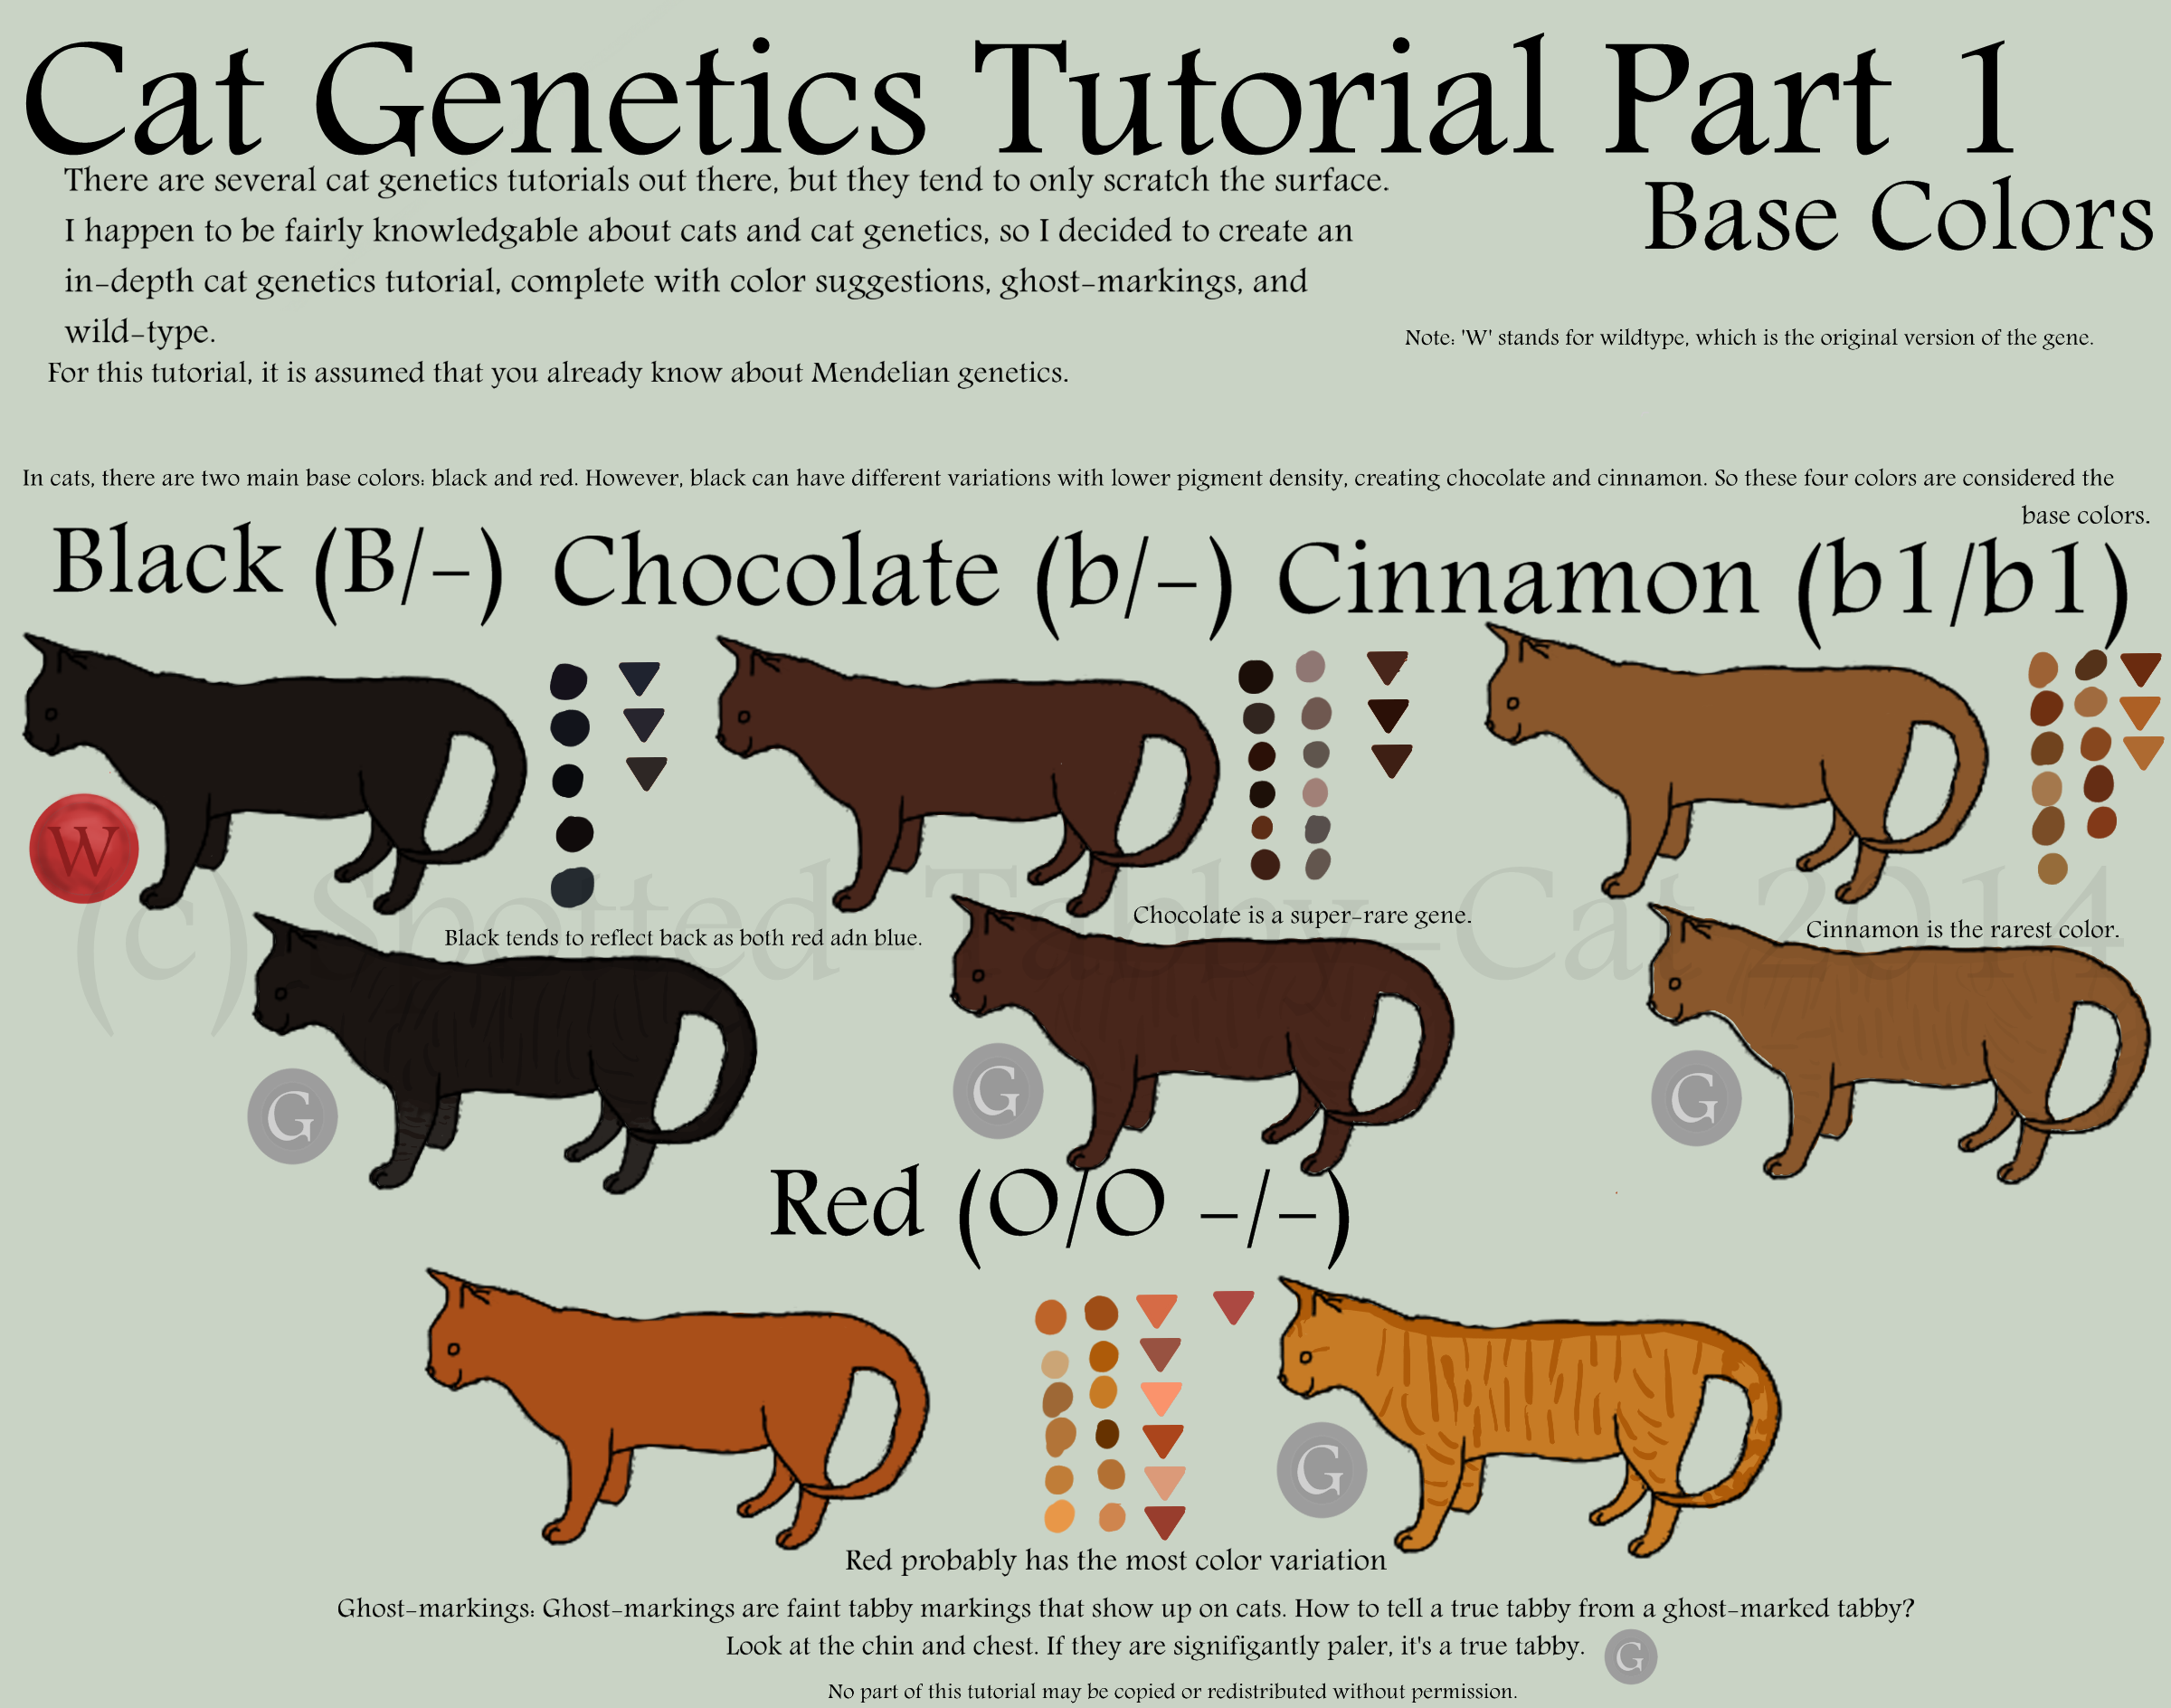 Cat Tutorial Part 1 (Base Colors) by Spotted